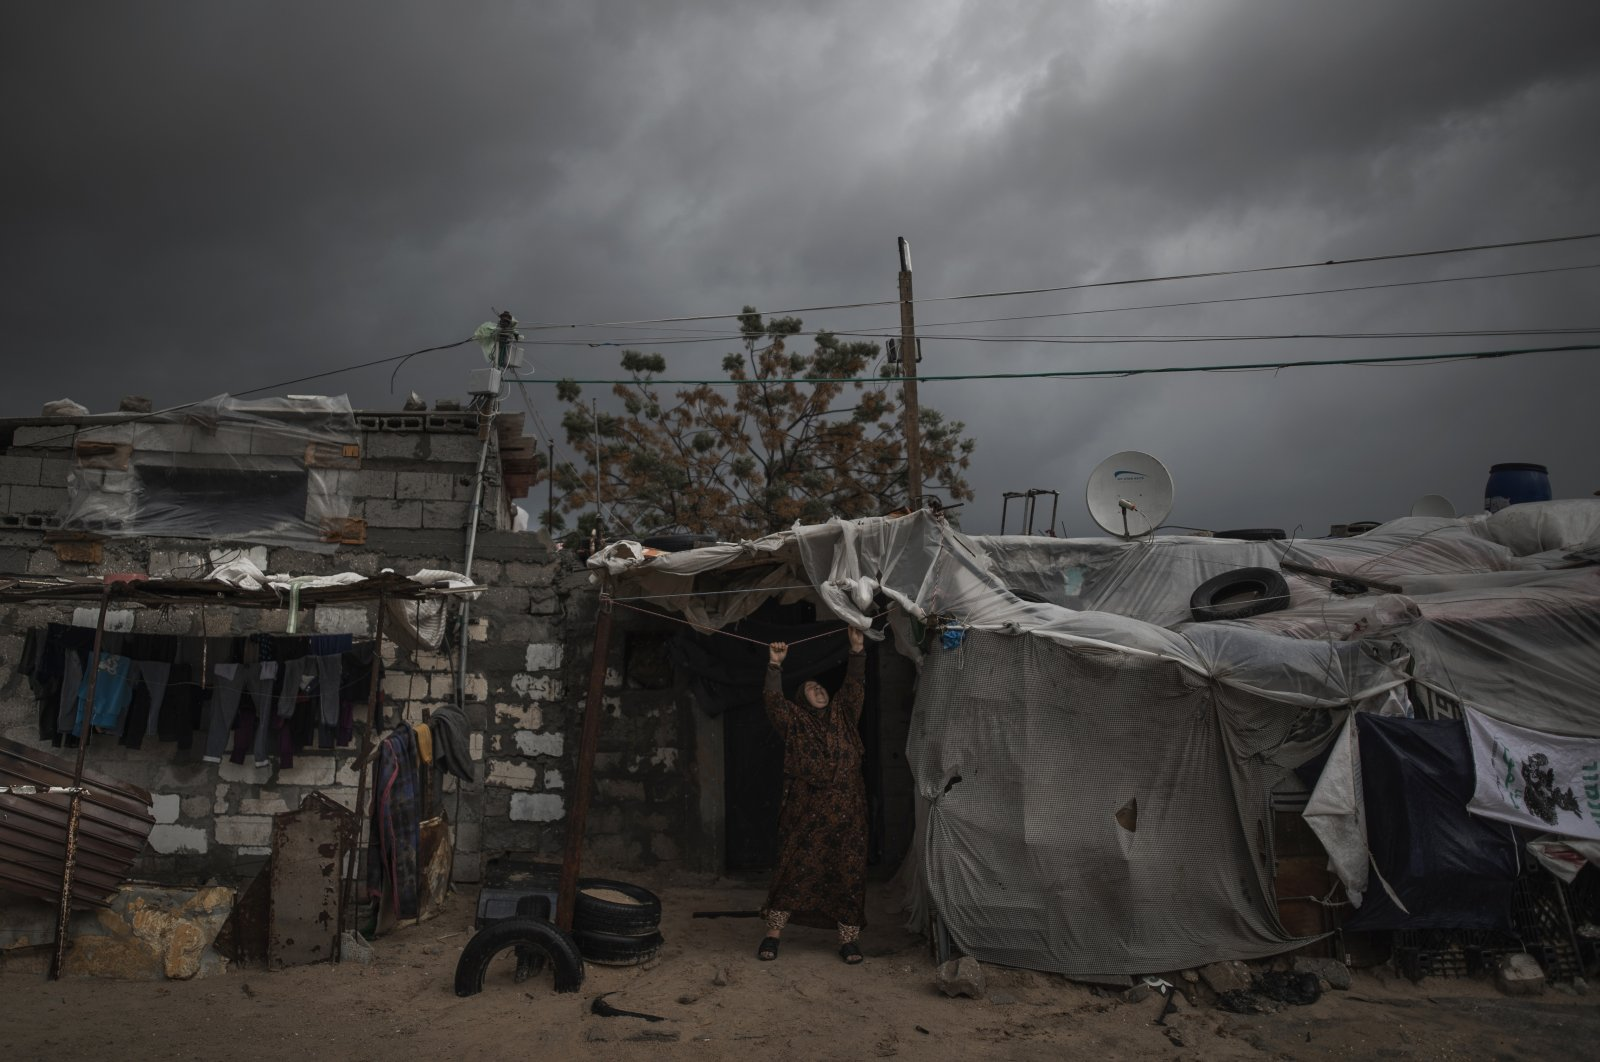 A Palestinian woman checks the nylon cover on the roof of her house on a rainy day in a poor neighborhood of Khan Younis, in the southern Gaza Strip, Jan. 20, 2021. (AP File Photo)